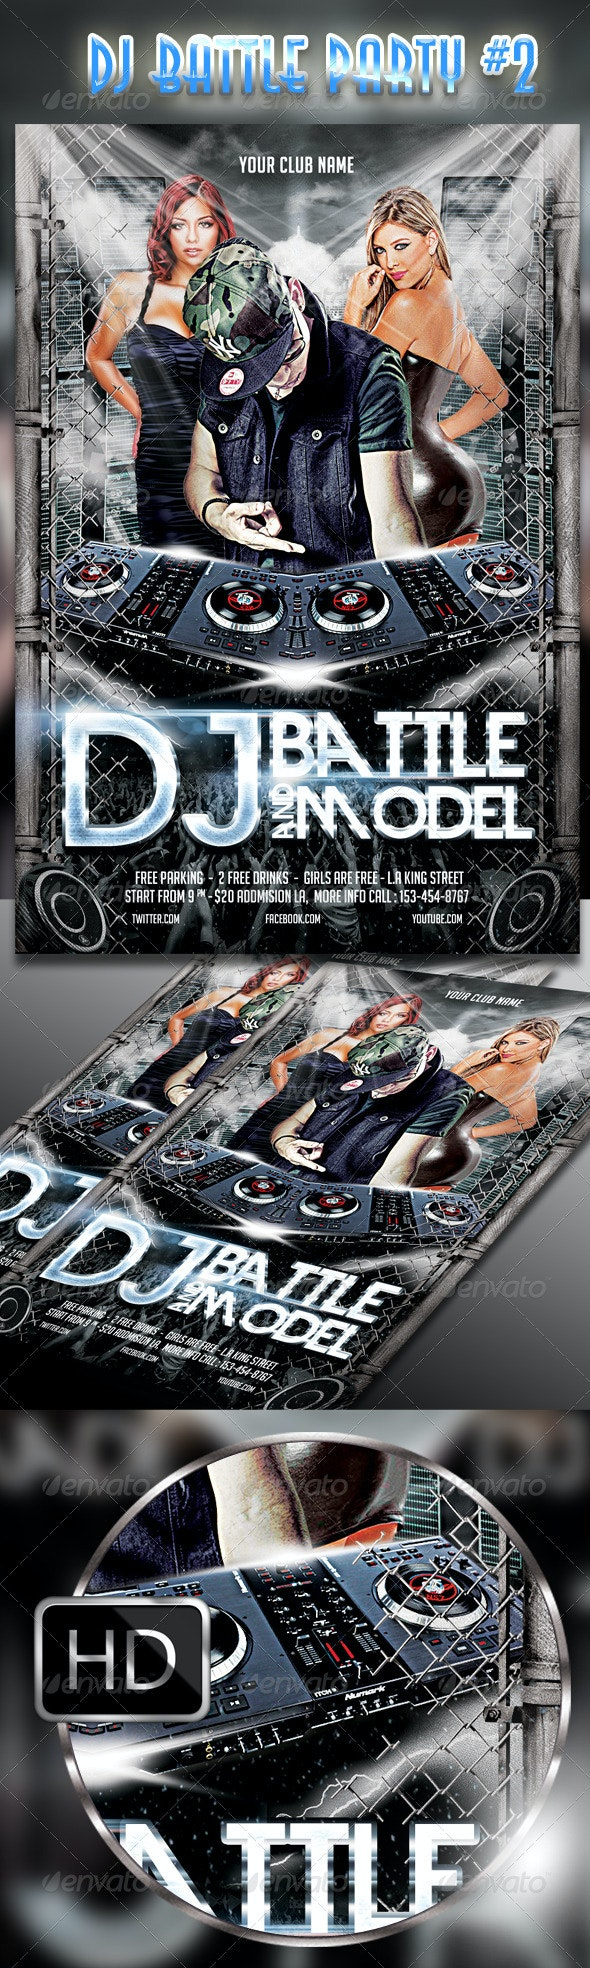 DJ Battle and Model Party Flyer - Clubs & Parties Events